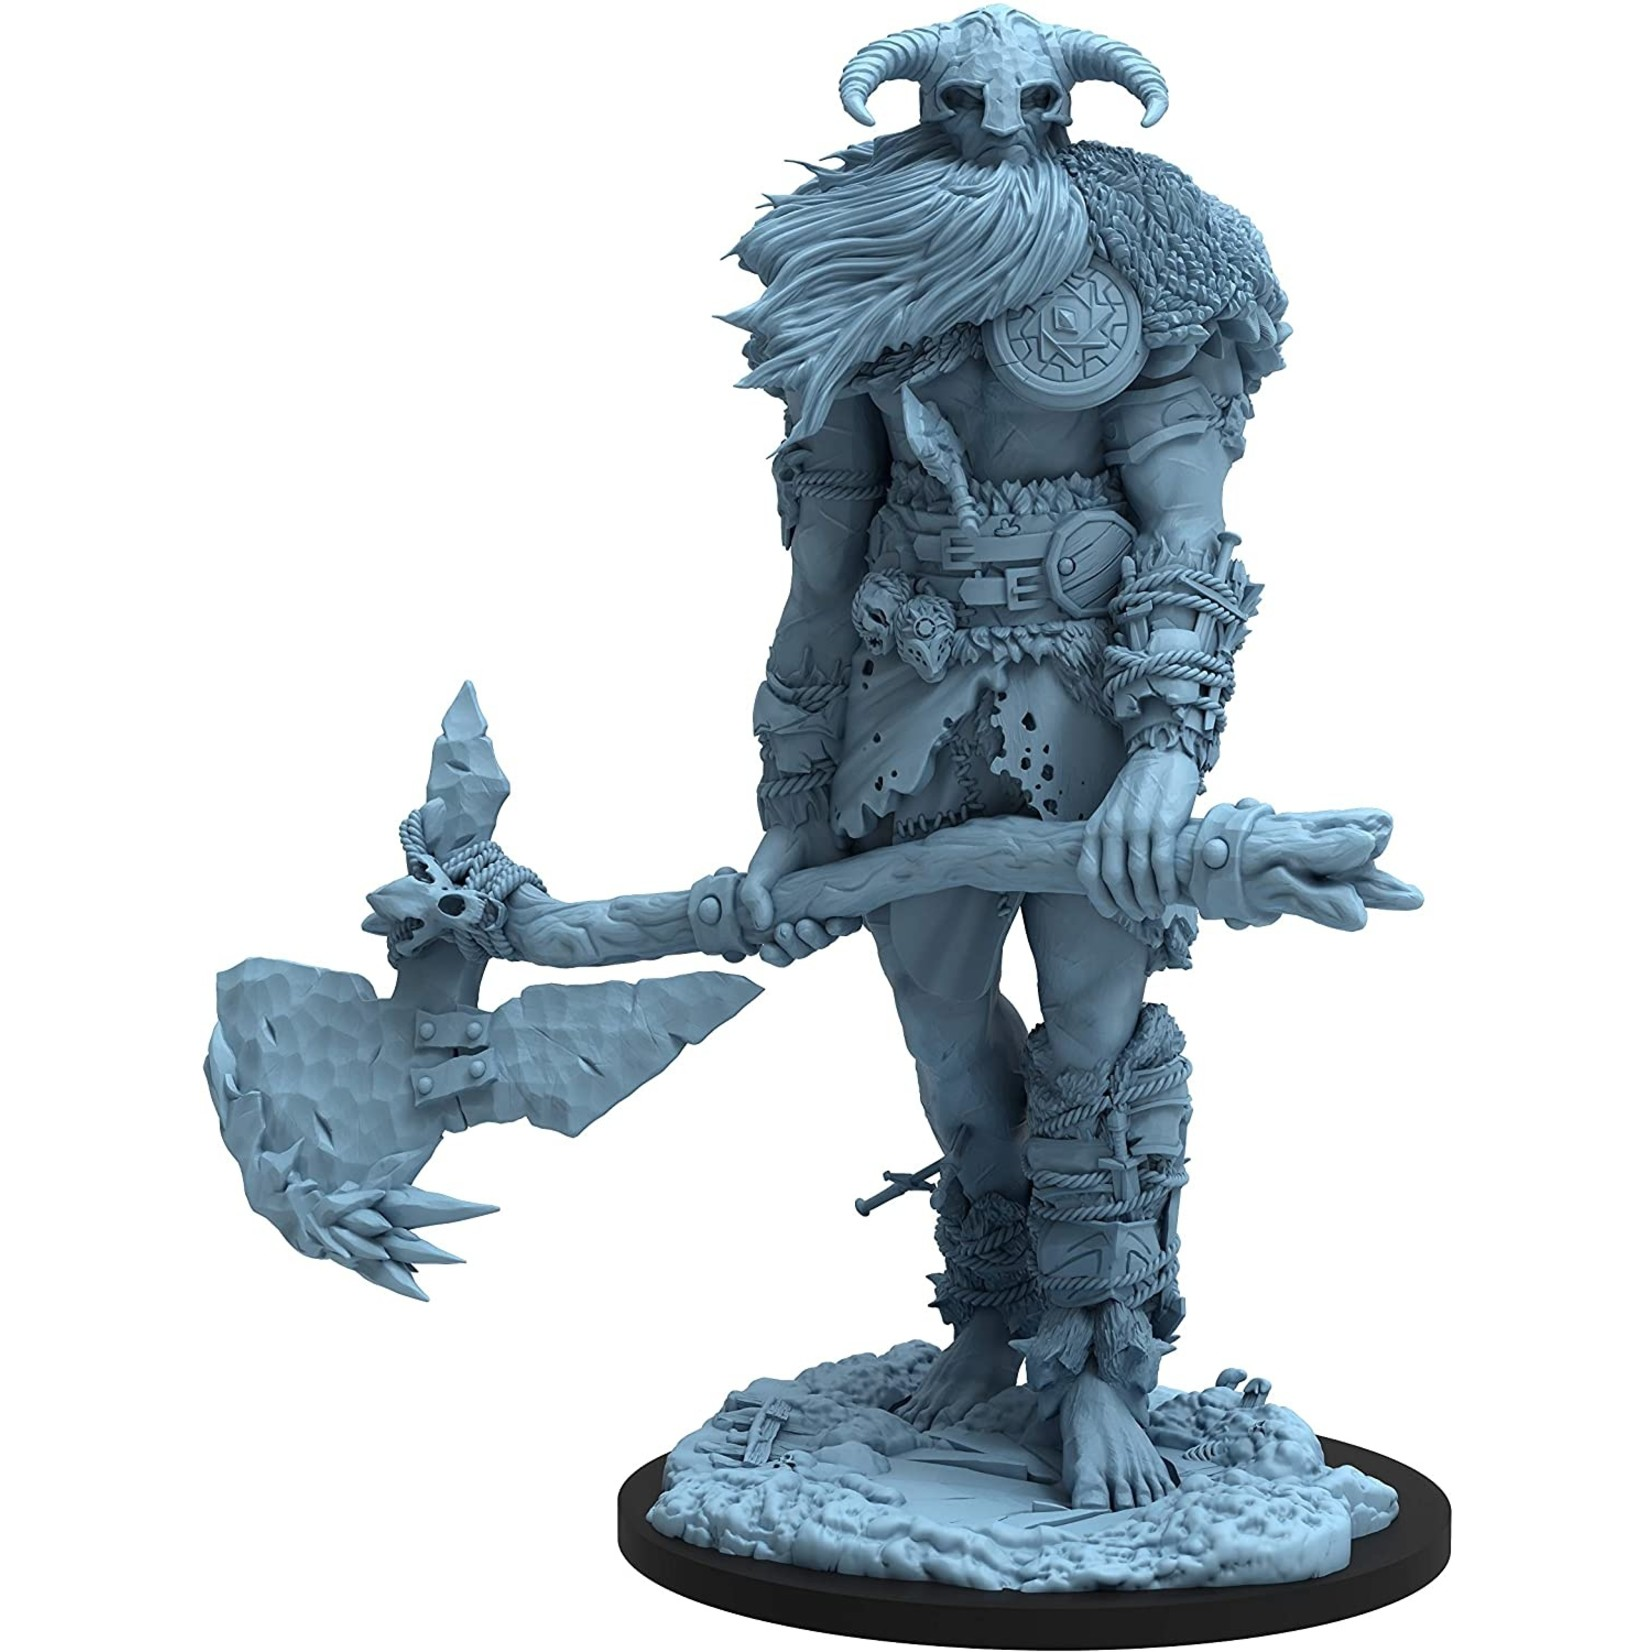 Steamforged Epic Encounters: Caverns of the Frost Giant